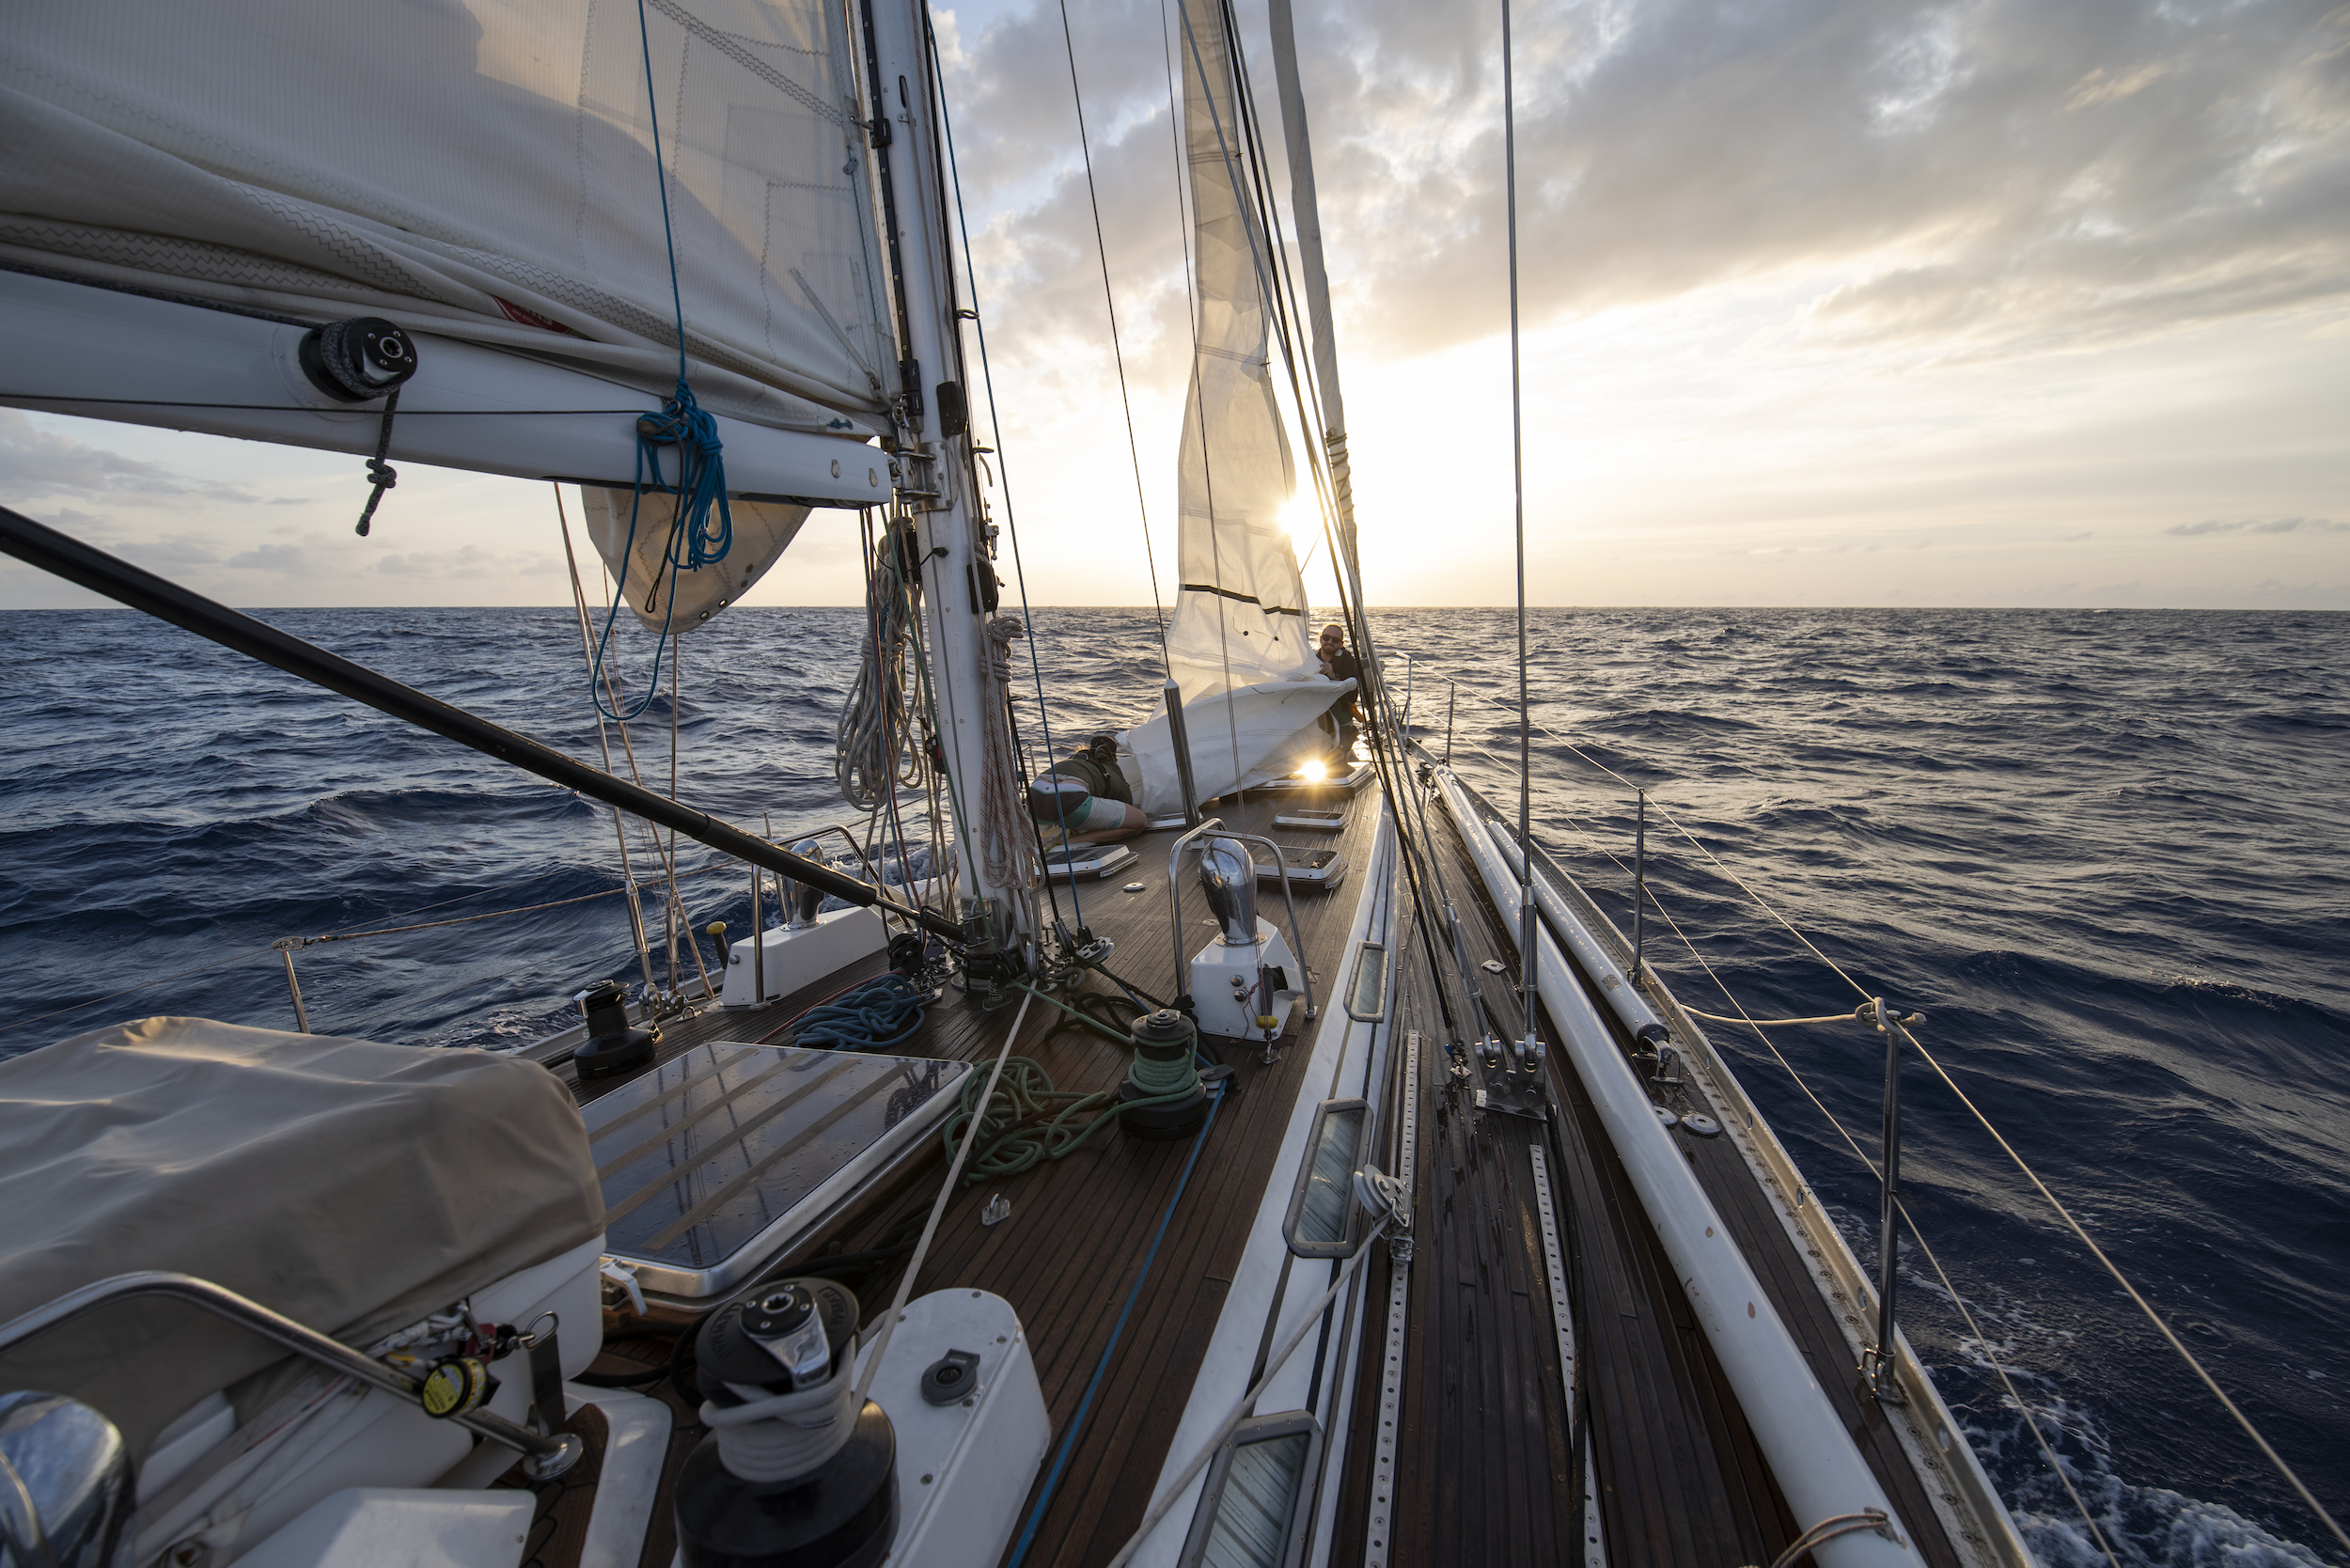 Staysail up. Staysail down. Lots of sail changes on this leg…Ryan, Colin & Bob on the foredeck at sunset.